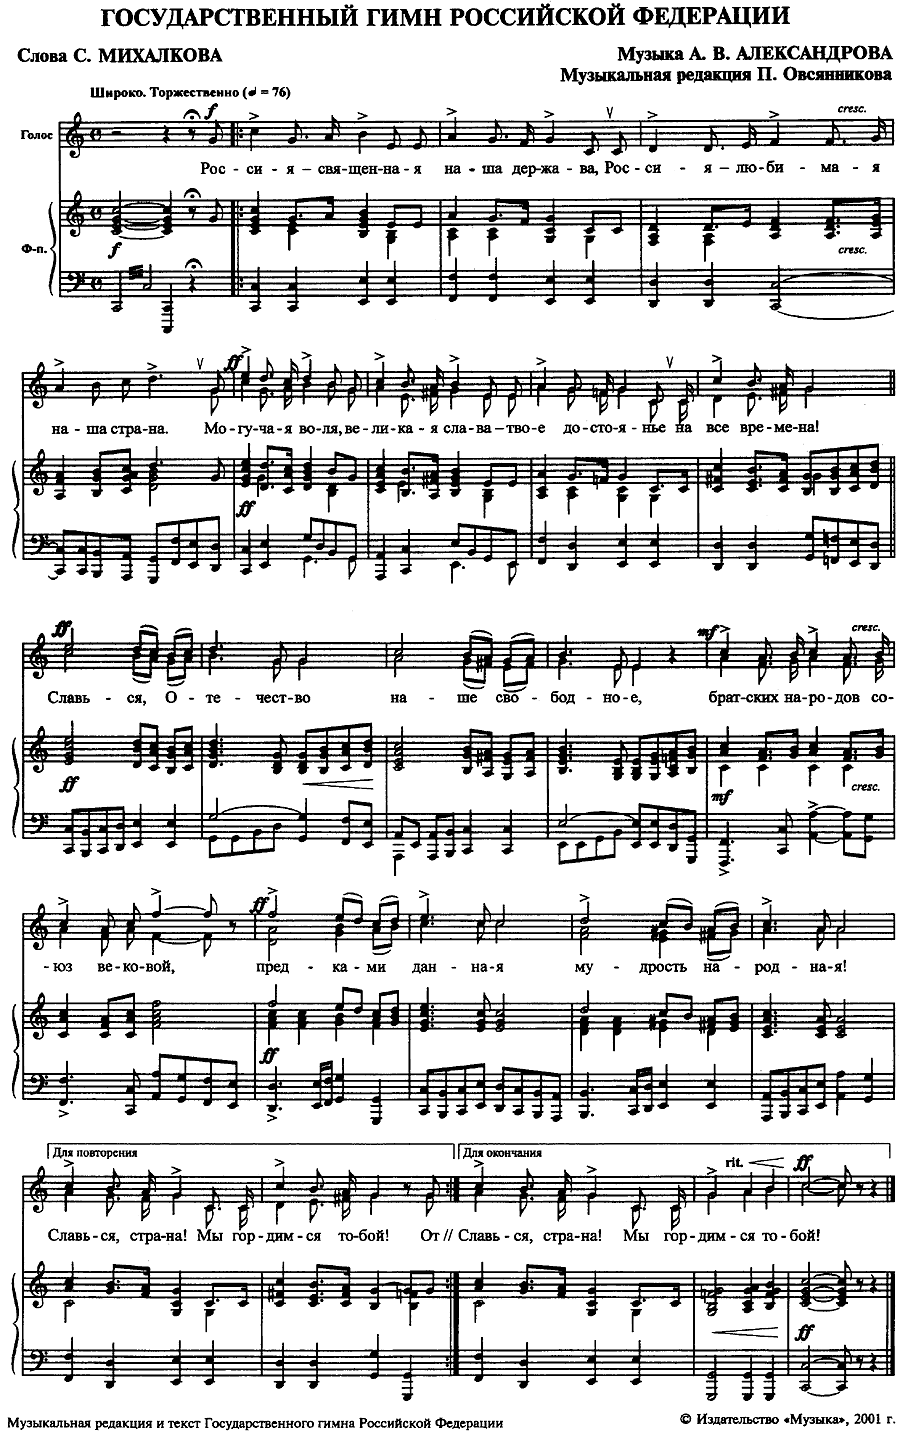 Hymn of Russia sheet music 2001.png